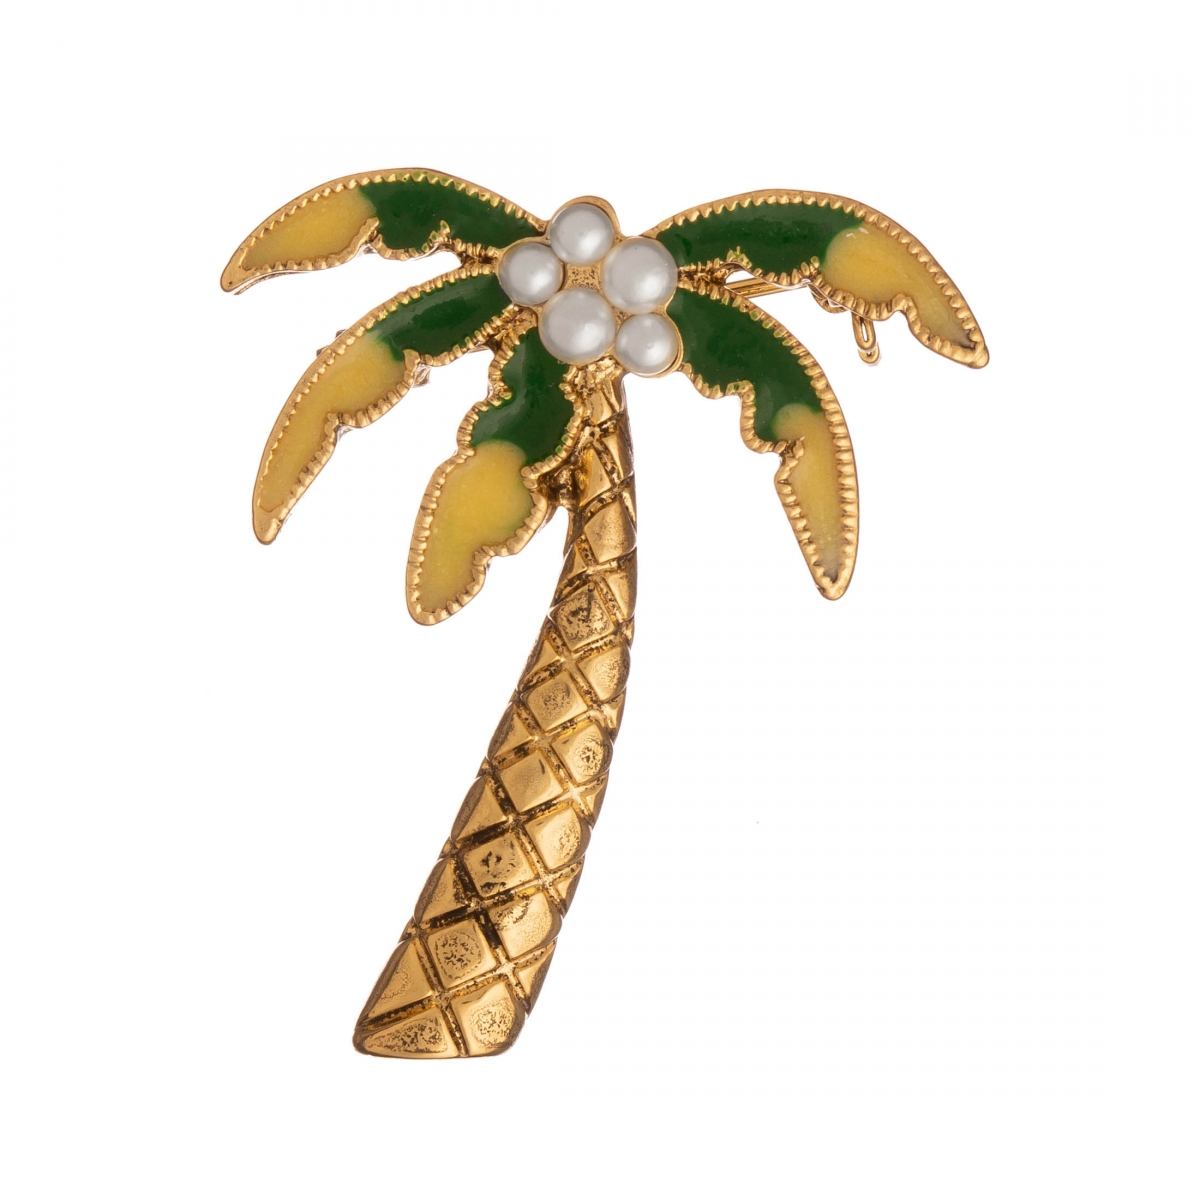 Brošňa Palma / Palm Tree Yellow - Green Colour with White Pearl